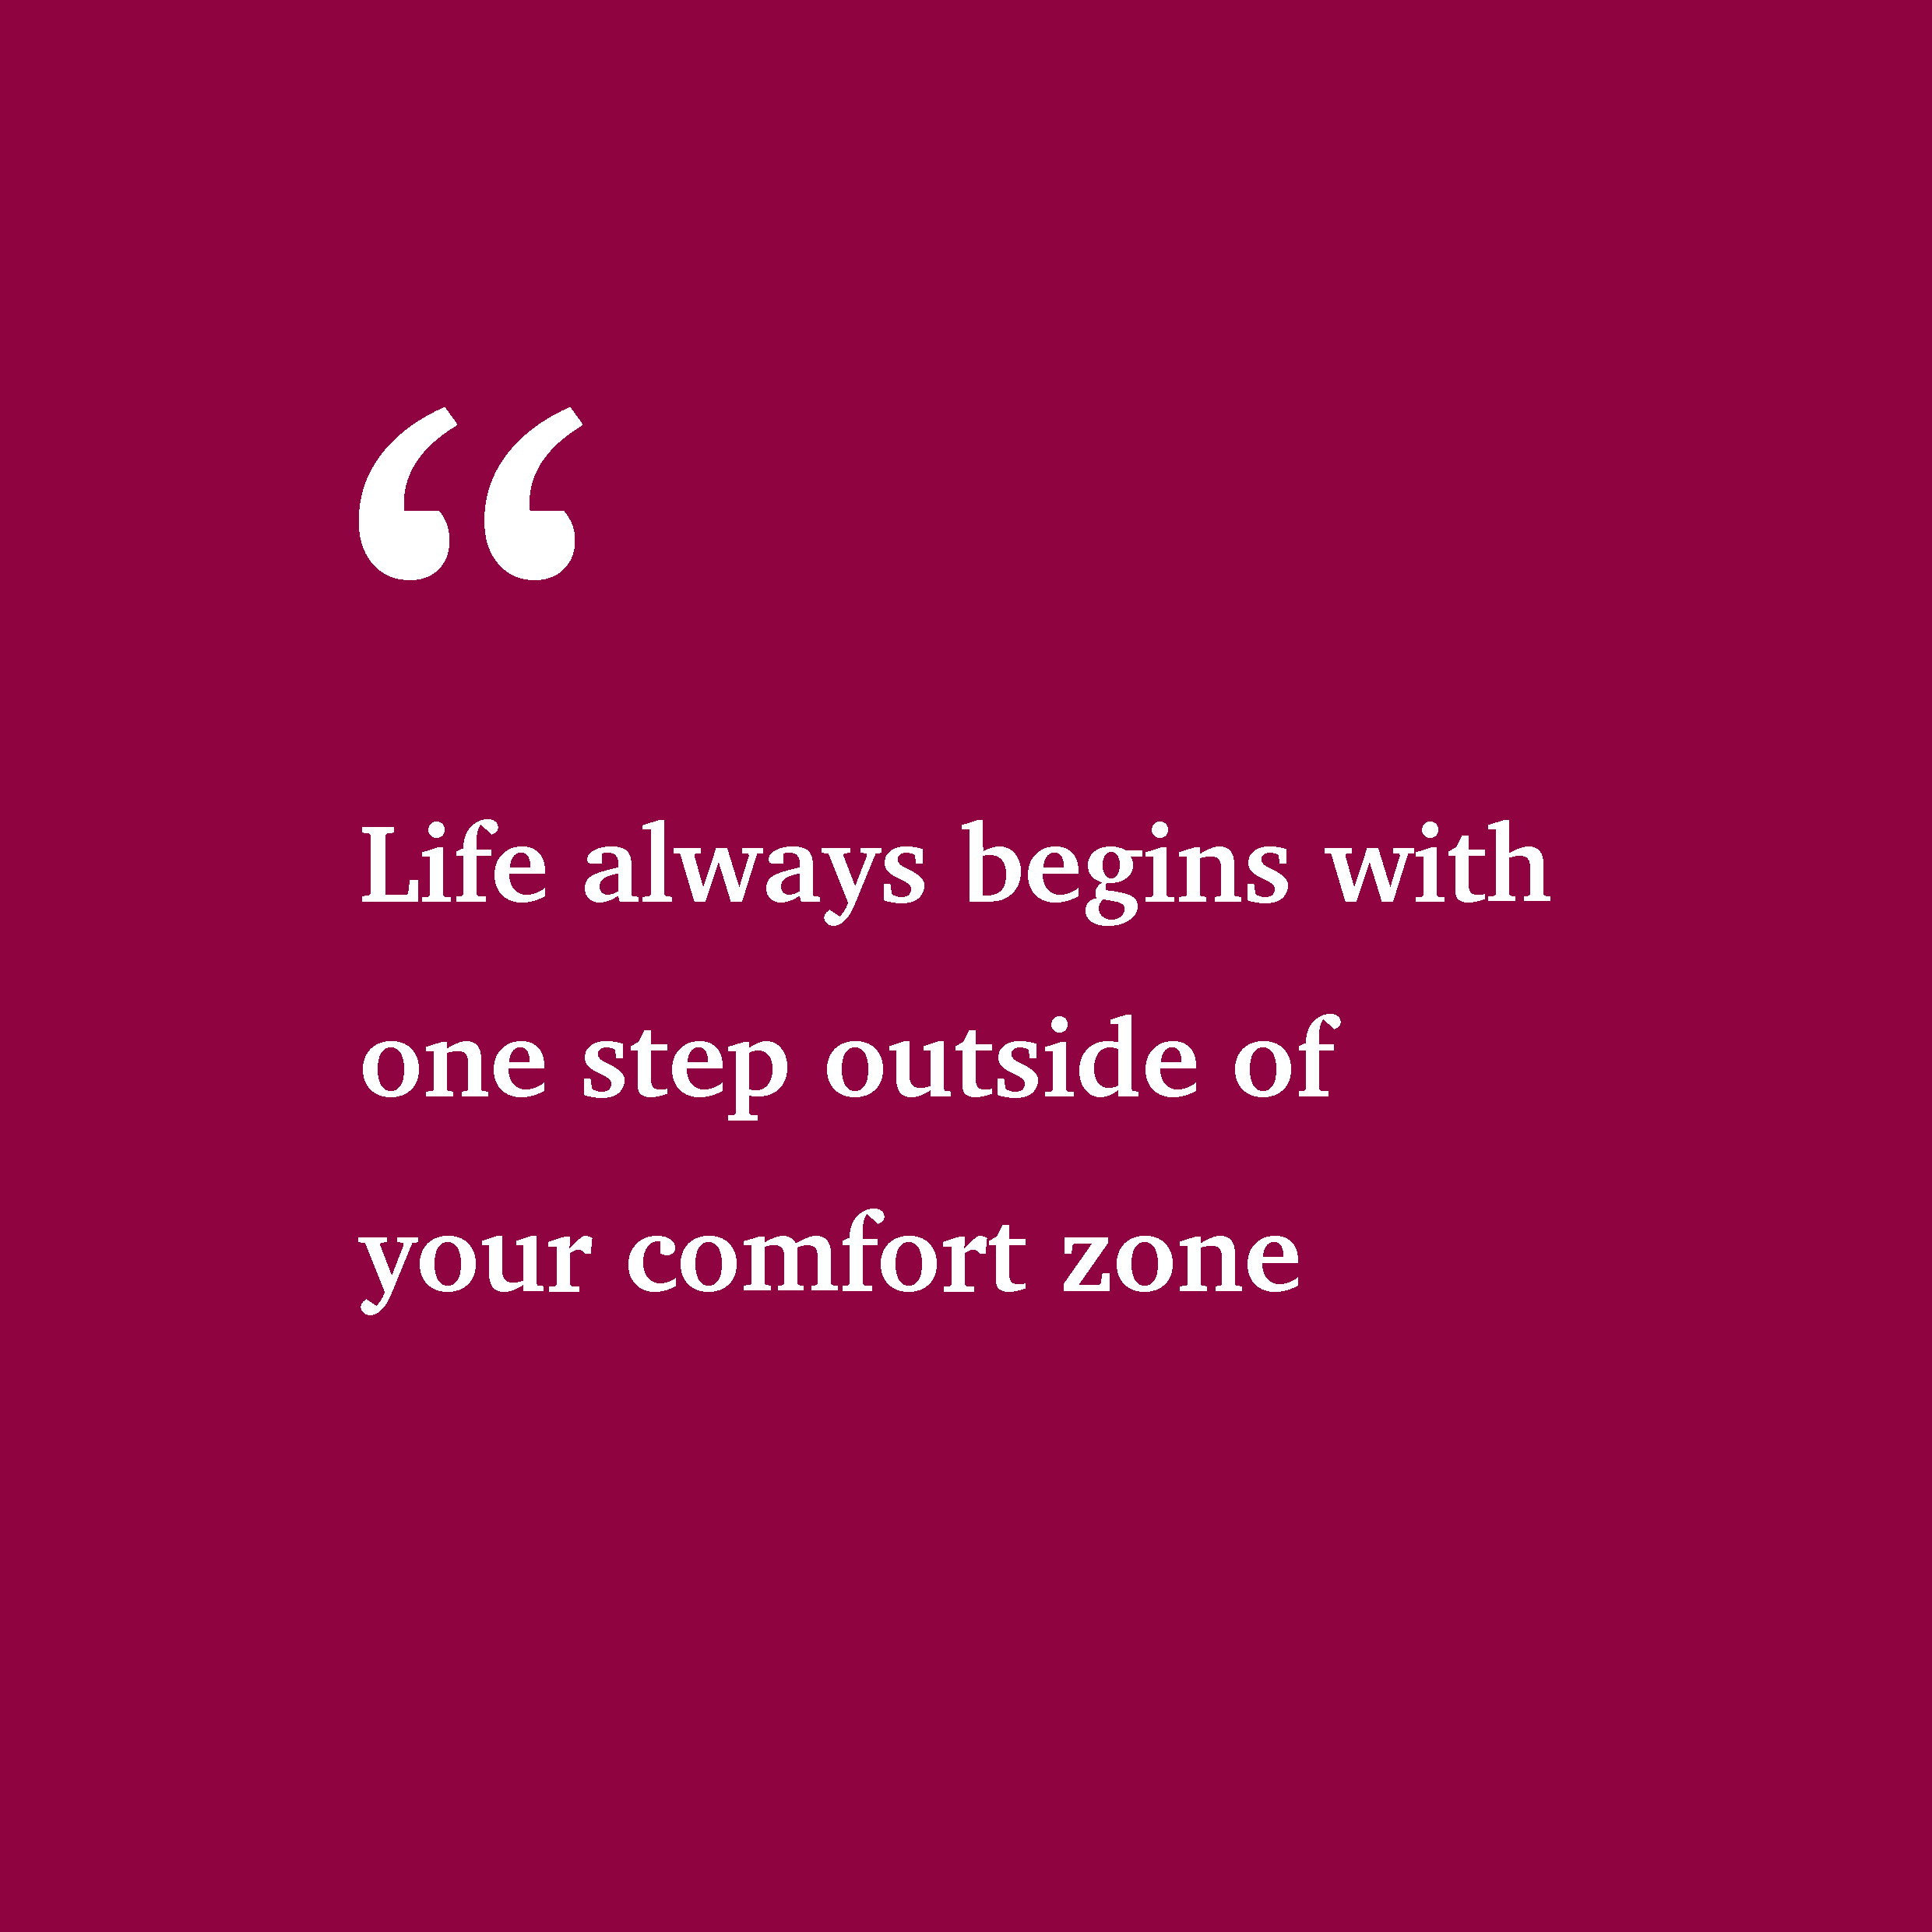 Life always begins with one step outside of your comfort zone